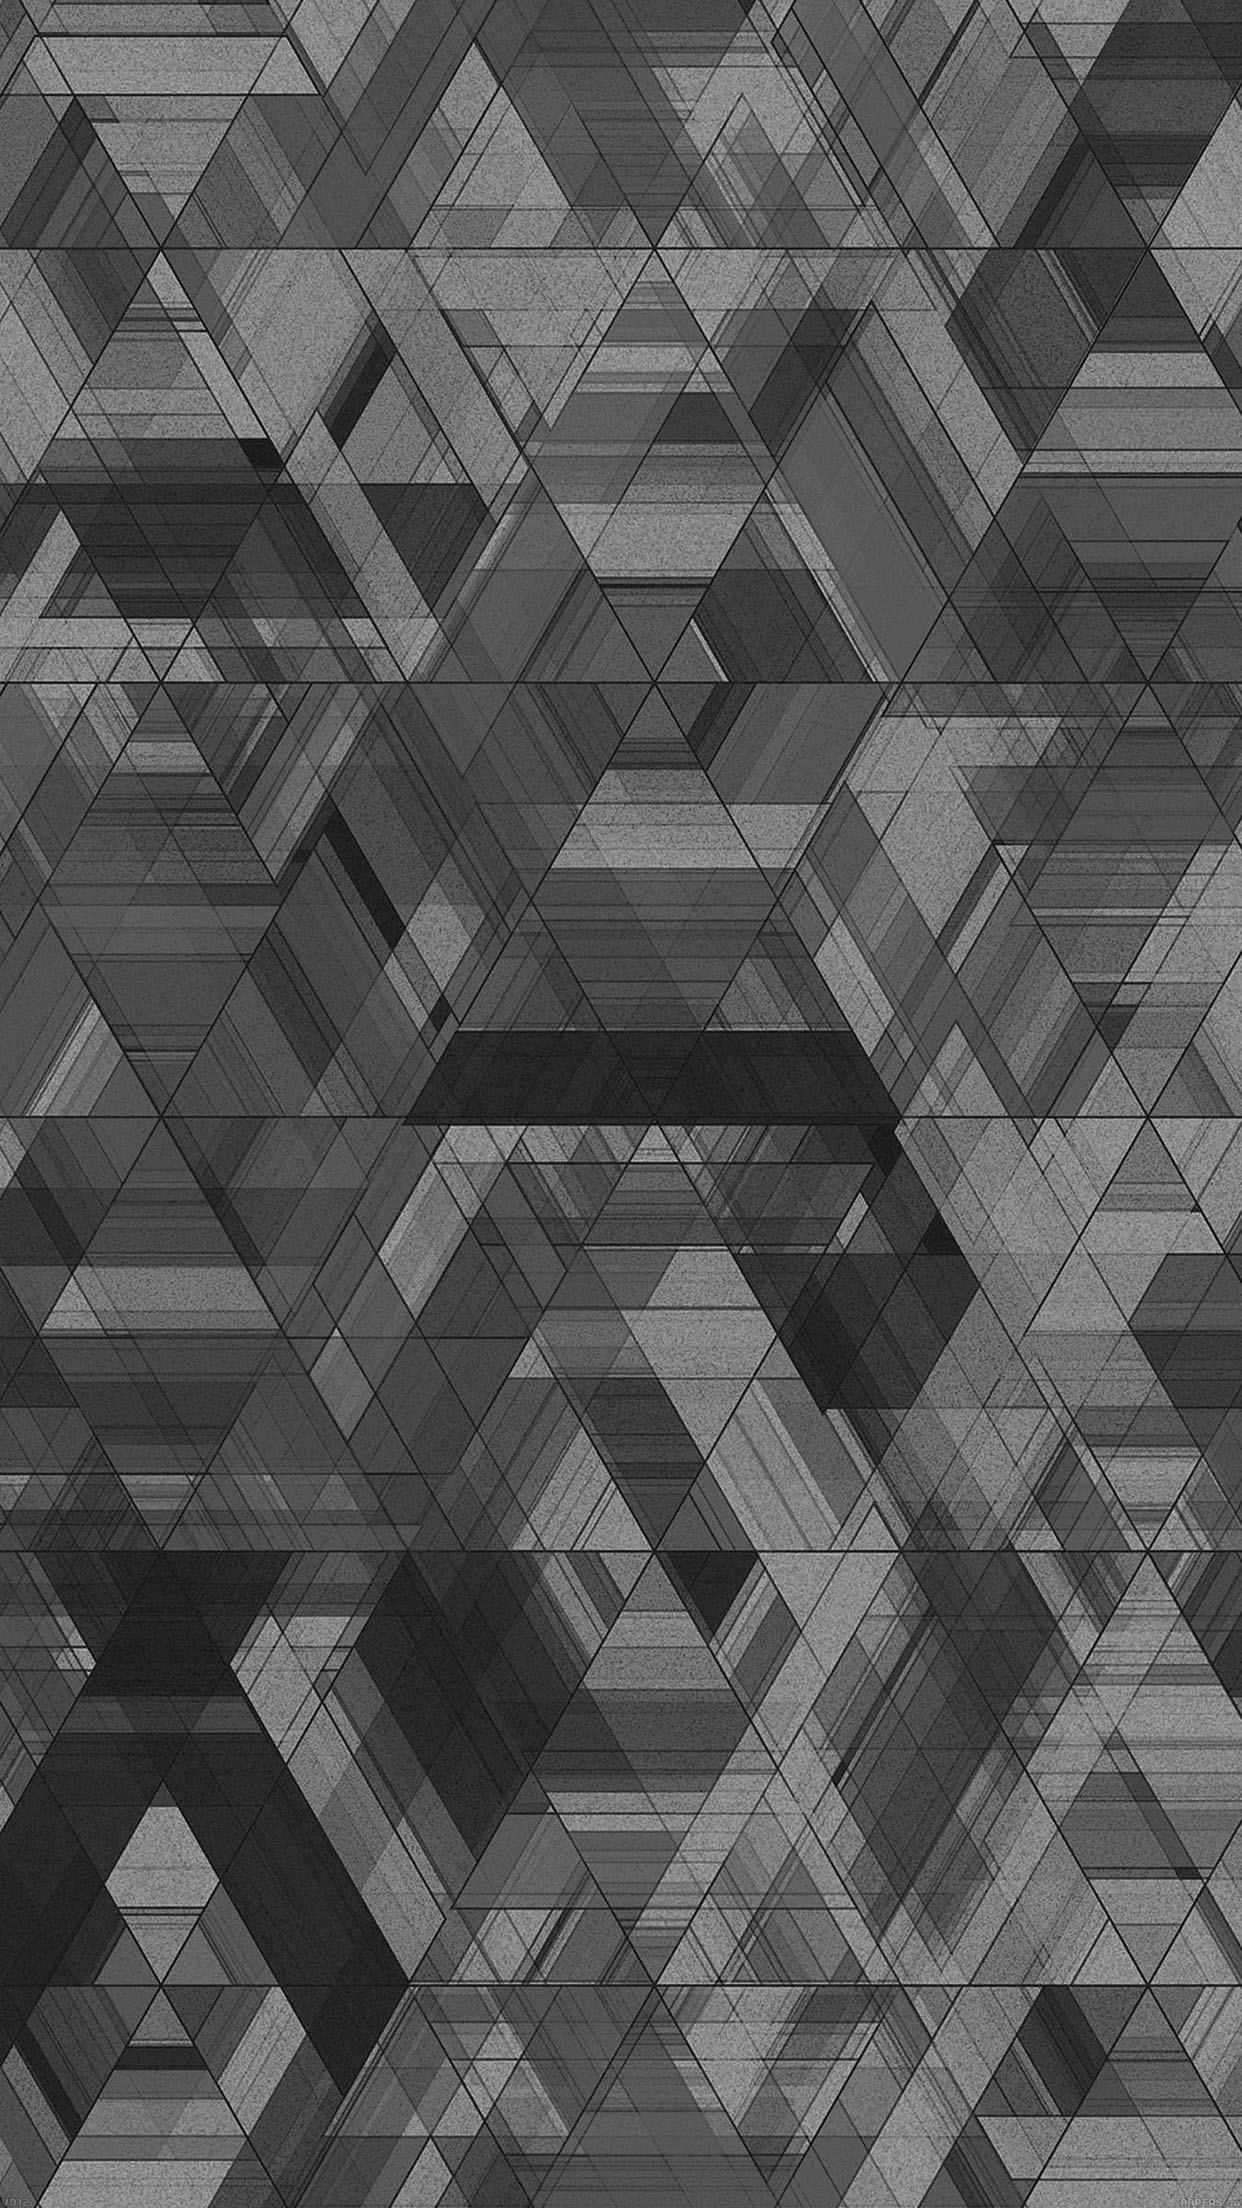 space-black-abstract-cimon-cpage-pattern-art-34-iphone-7-plus-wallpaper